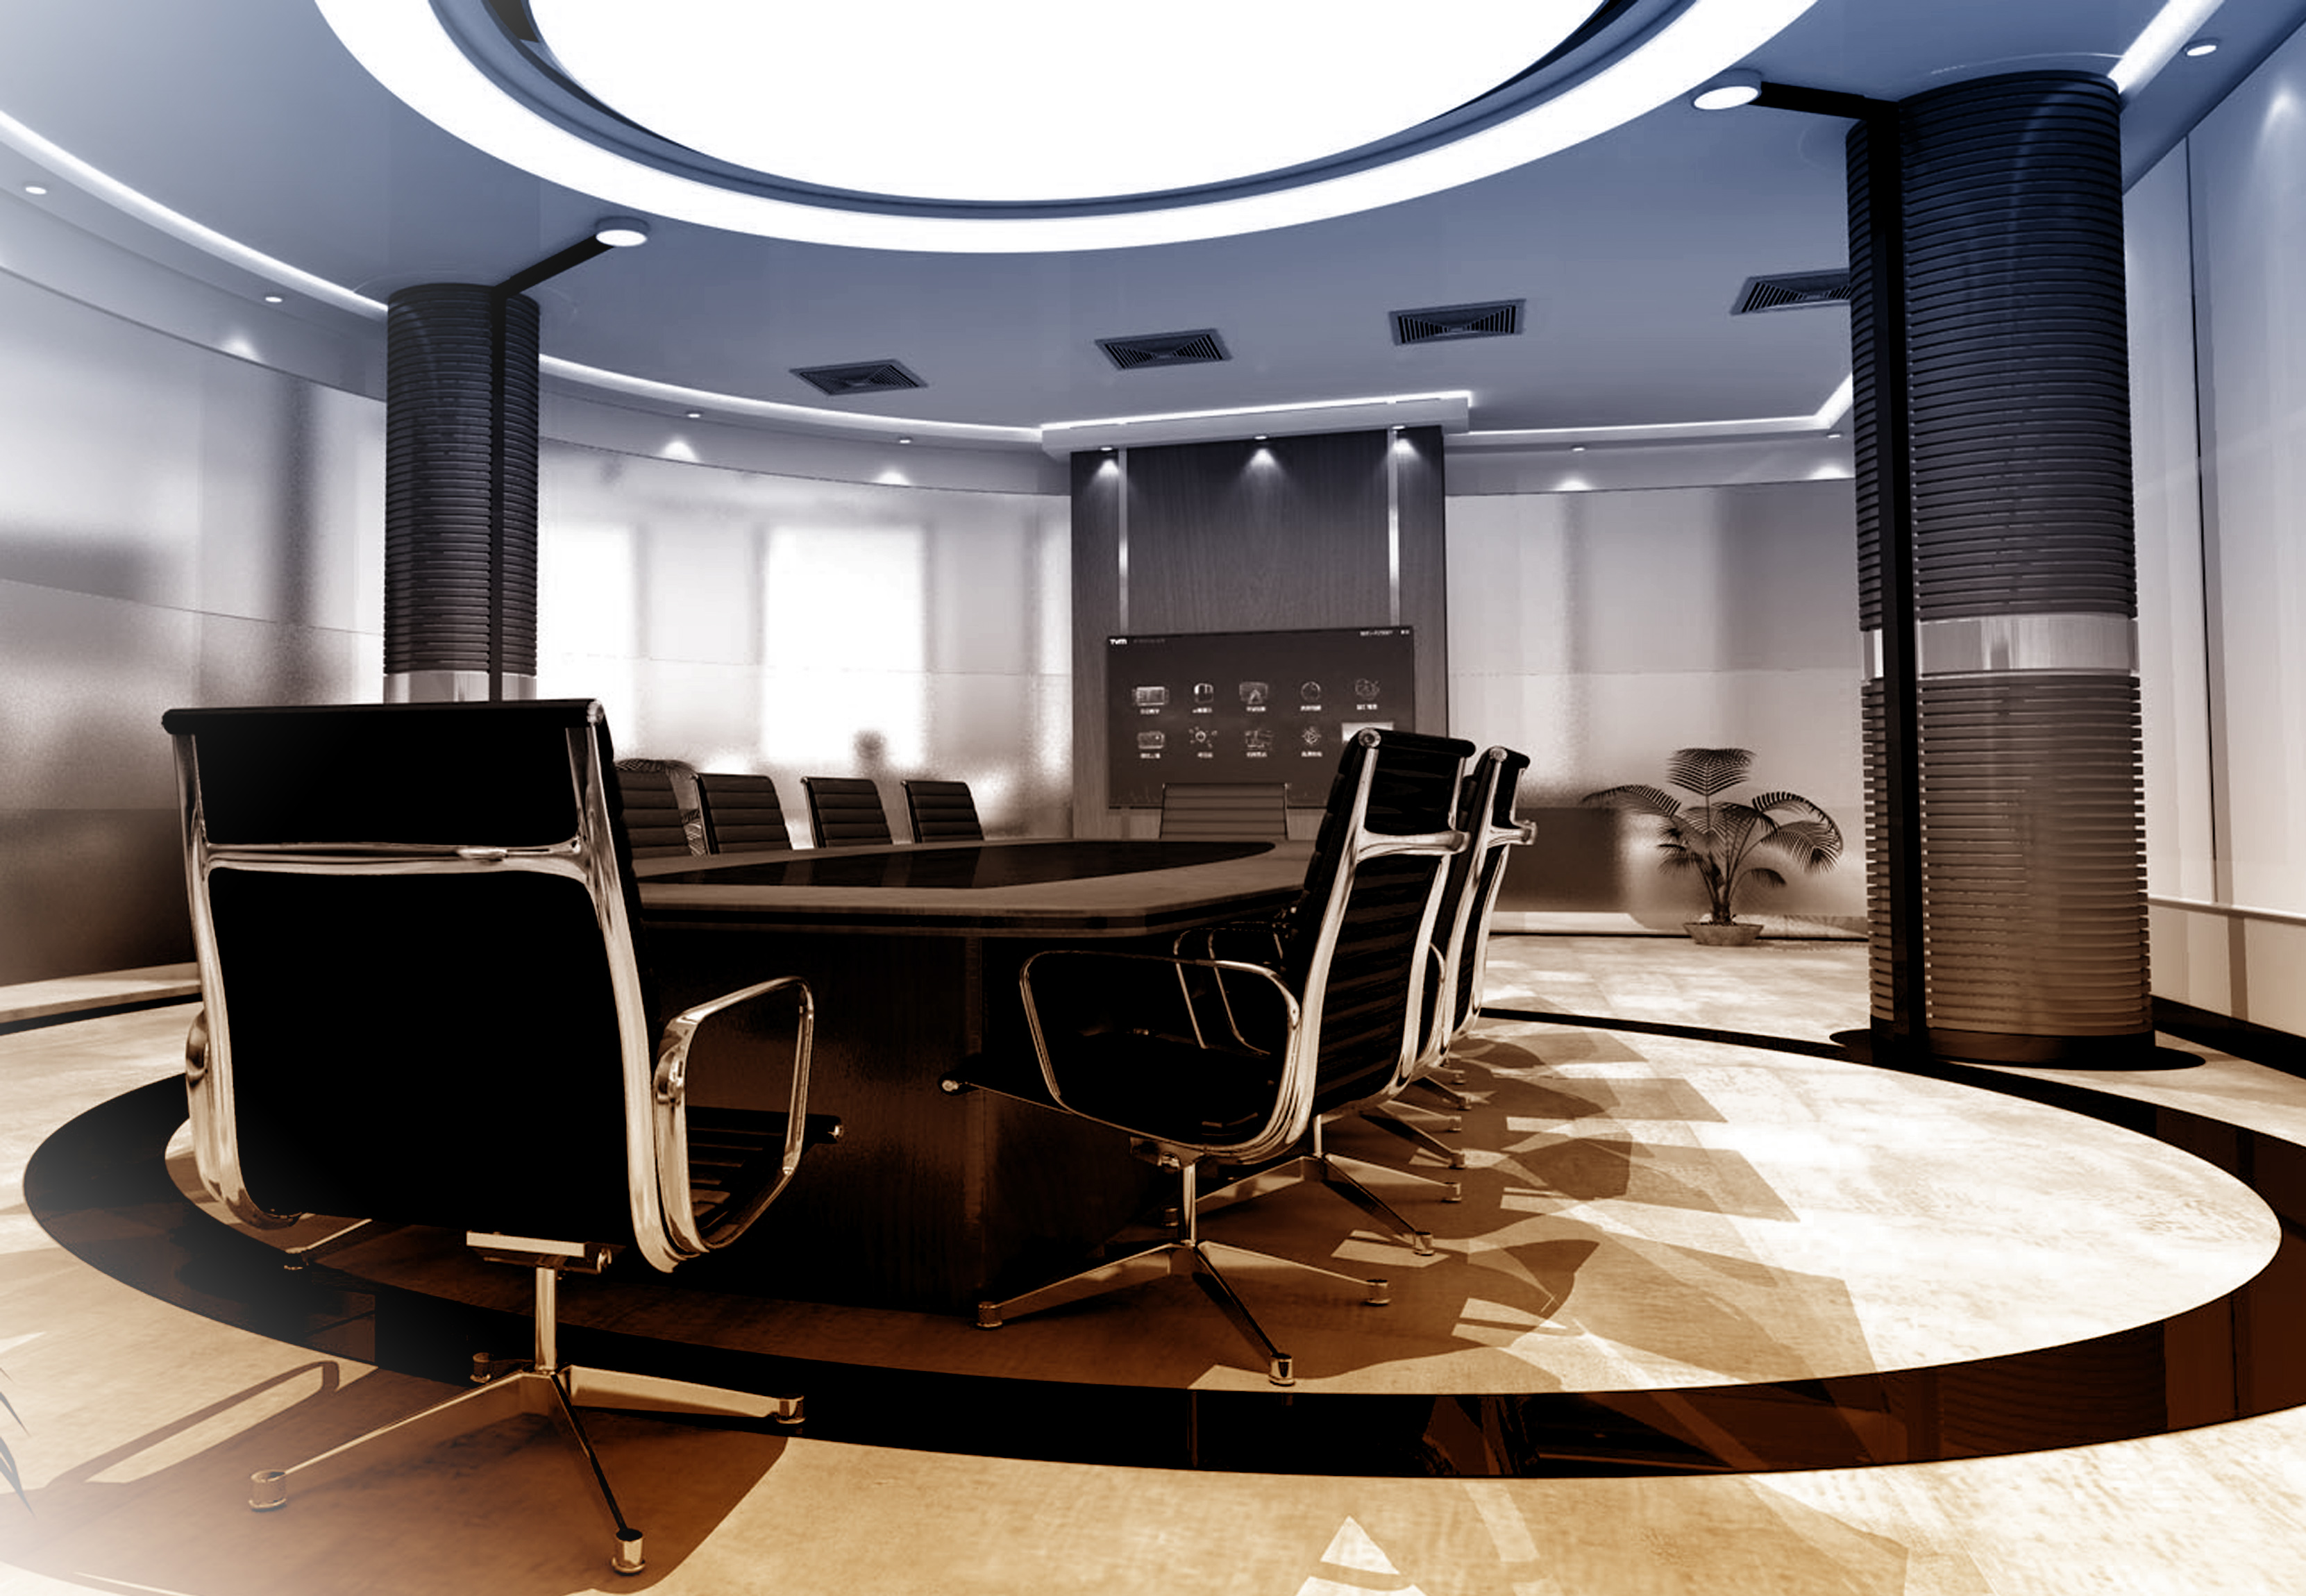 Meeting room - corporate concept photo